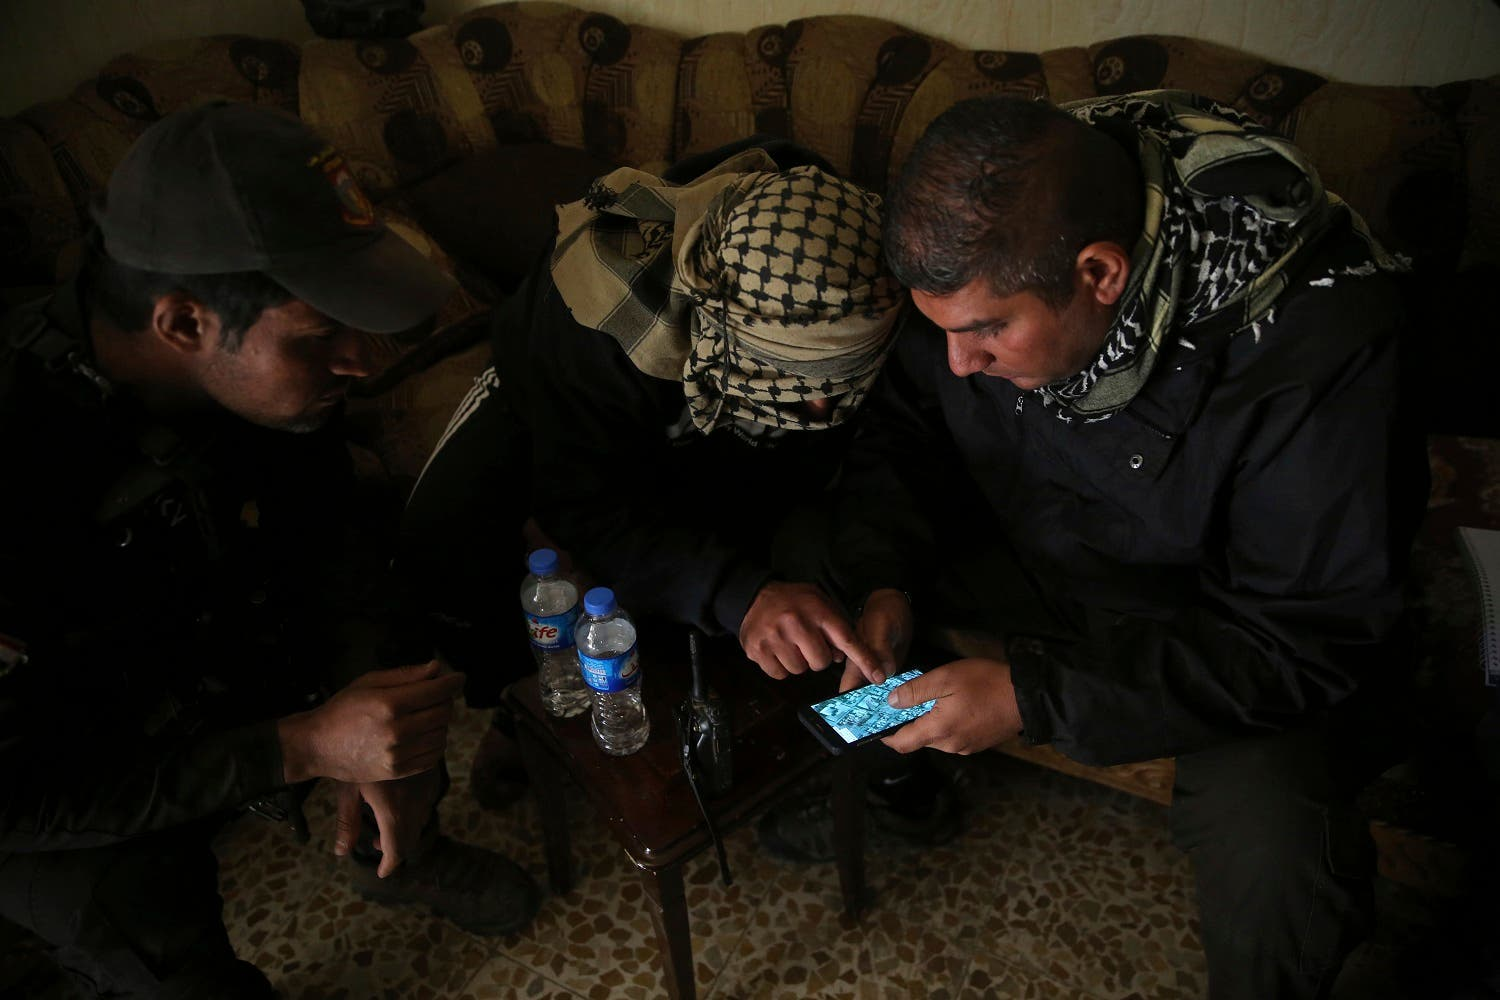 Iraqis risk all to spy on ISIS militants in Mosul AP